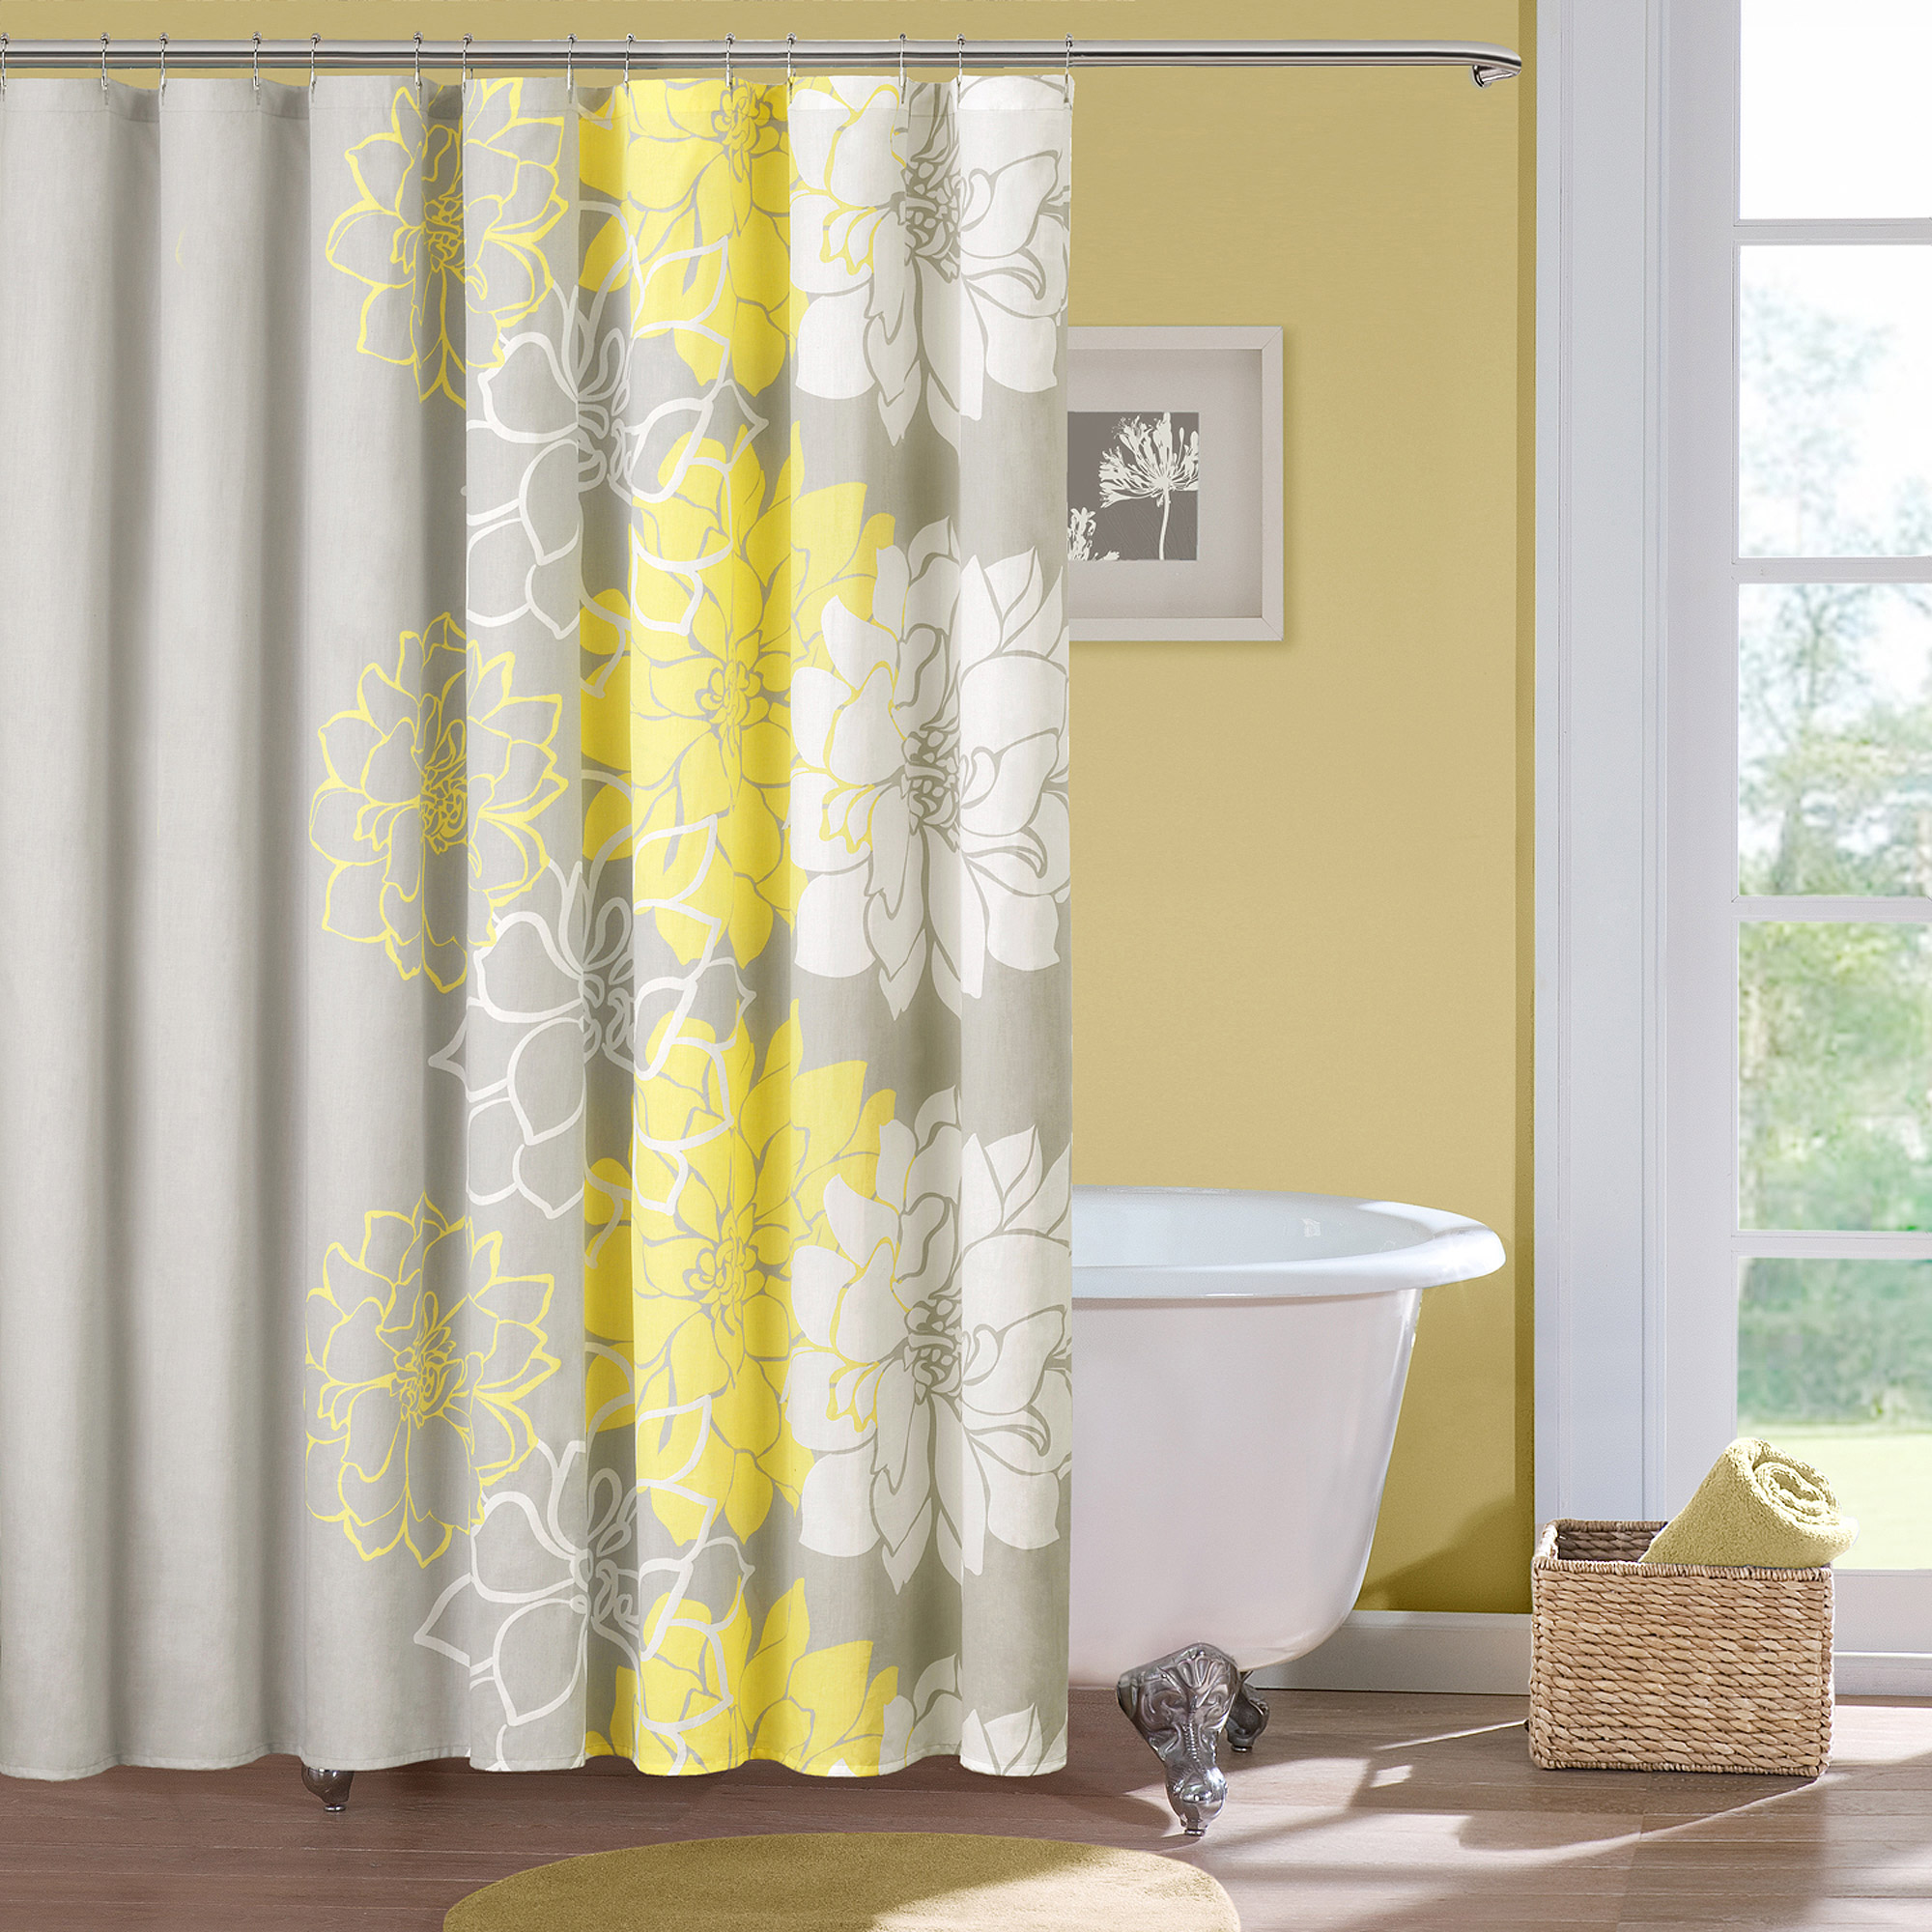 Mainstays PEVA Shower Curtain 13-Piece Bathroom Set - Walmart.com